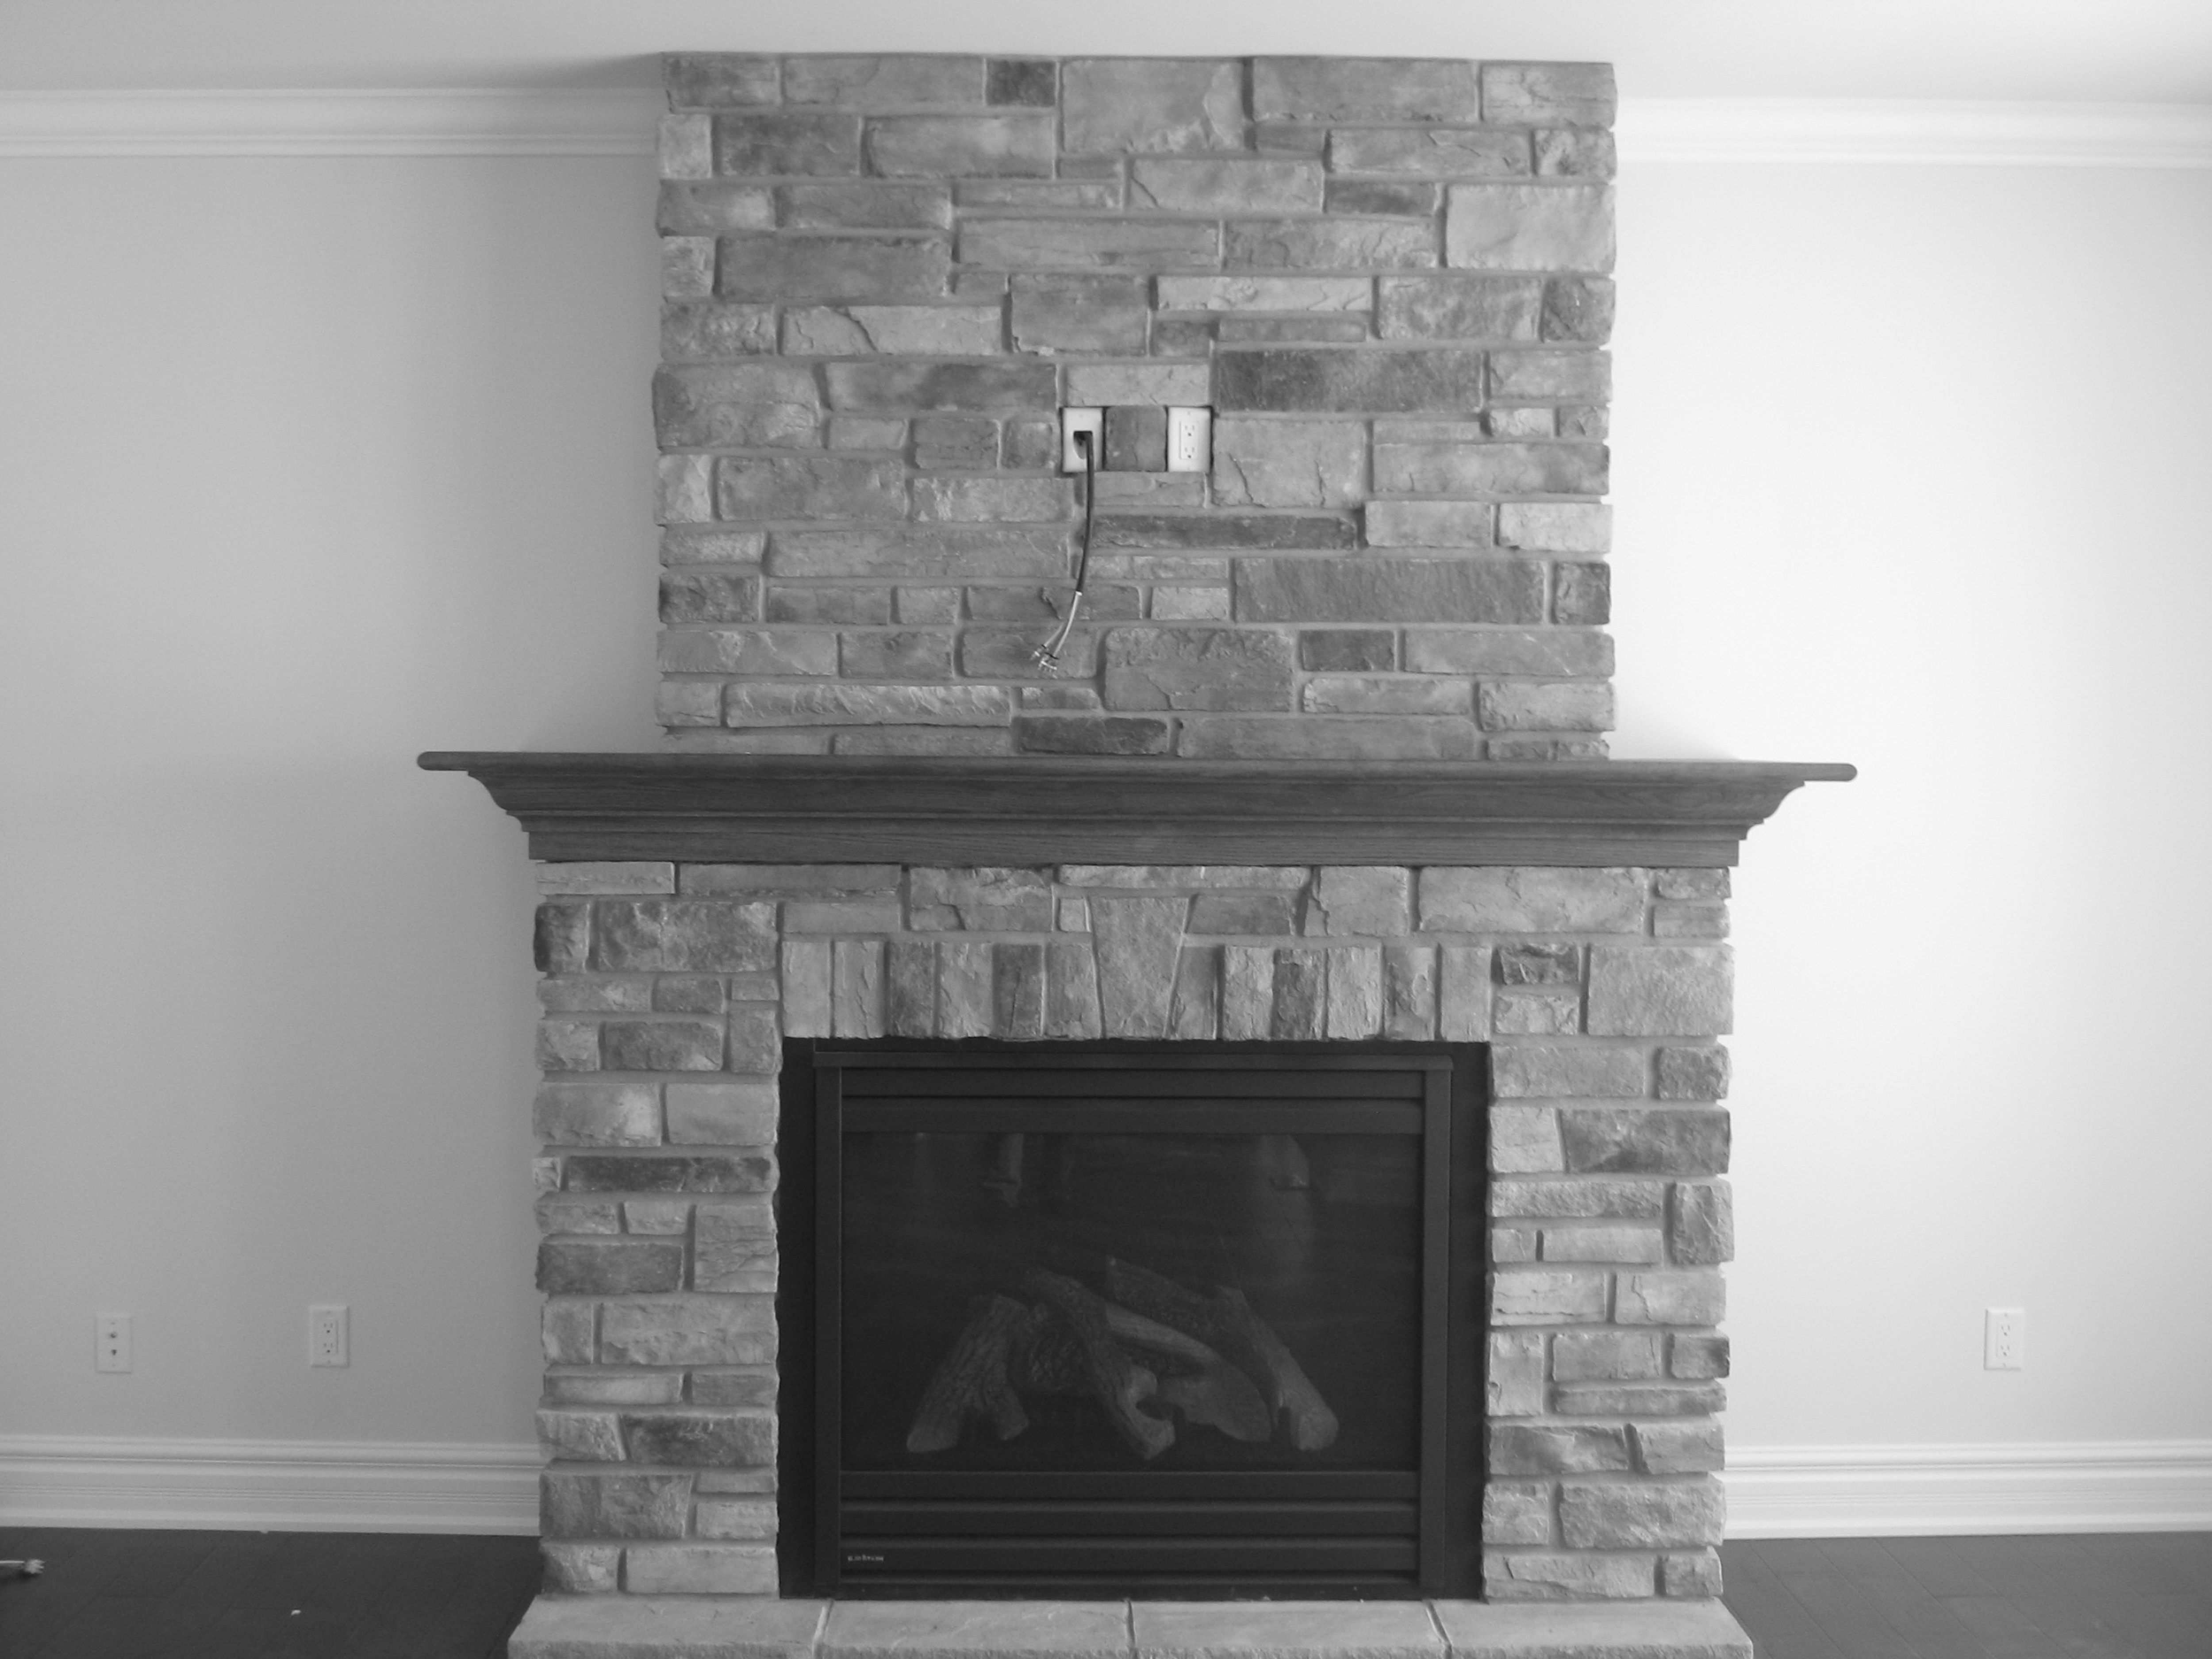 Stones Fireplaces interior : cultured stone fireplace designs wall texture owens